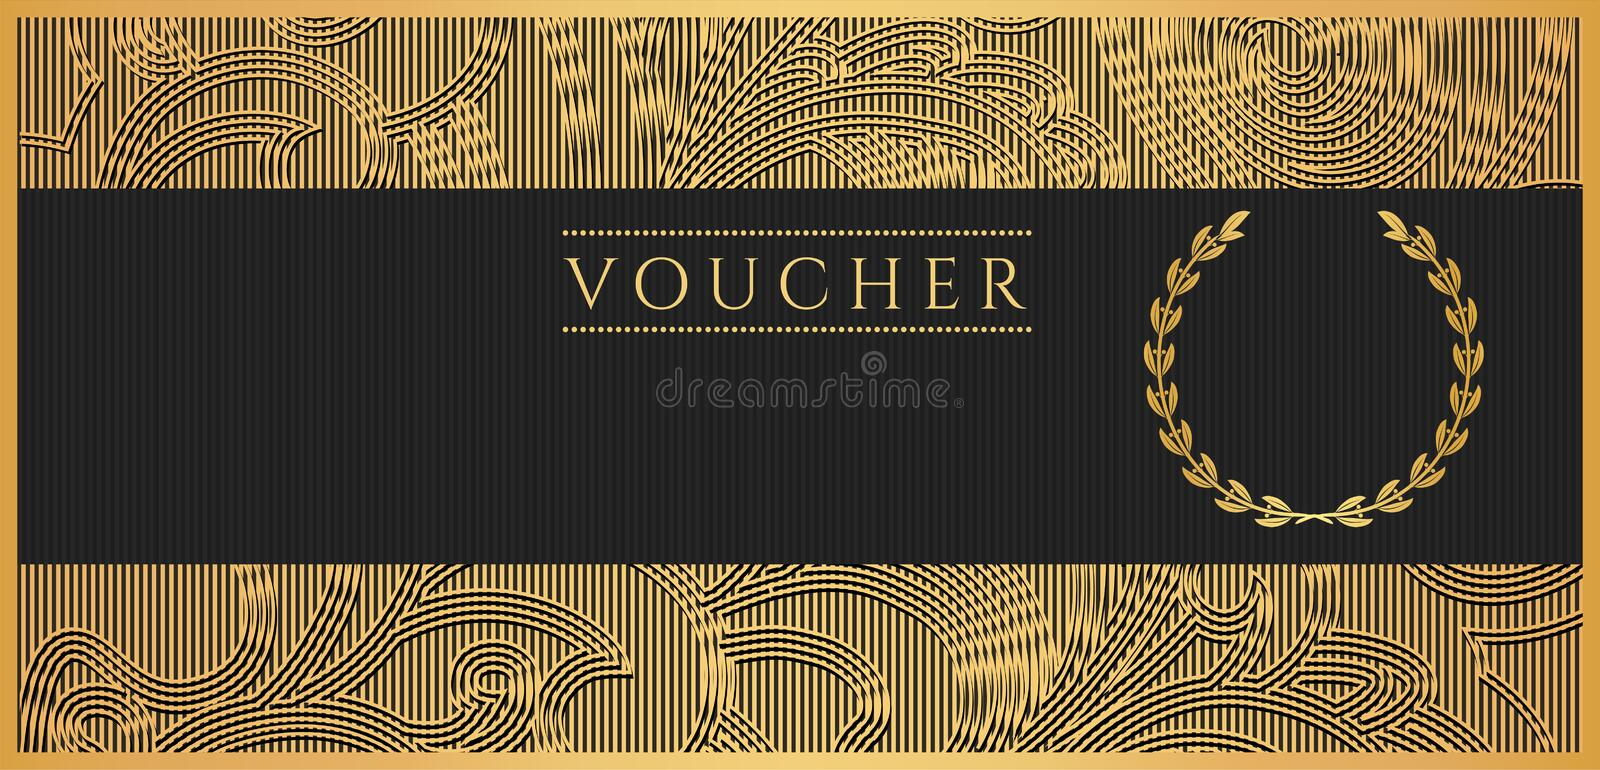 Voucher Gift Certificate Coupon Template Scroll Stock Photos Image 34469803